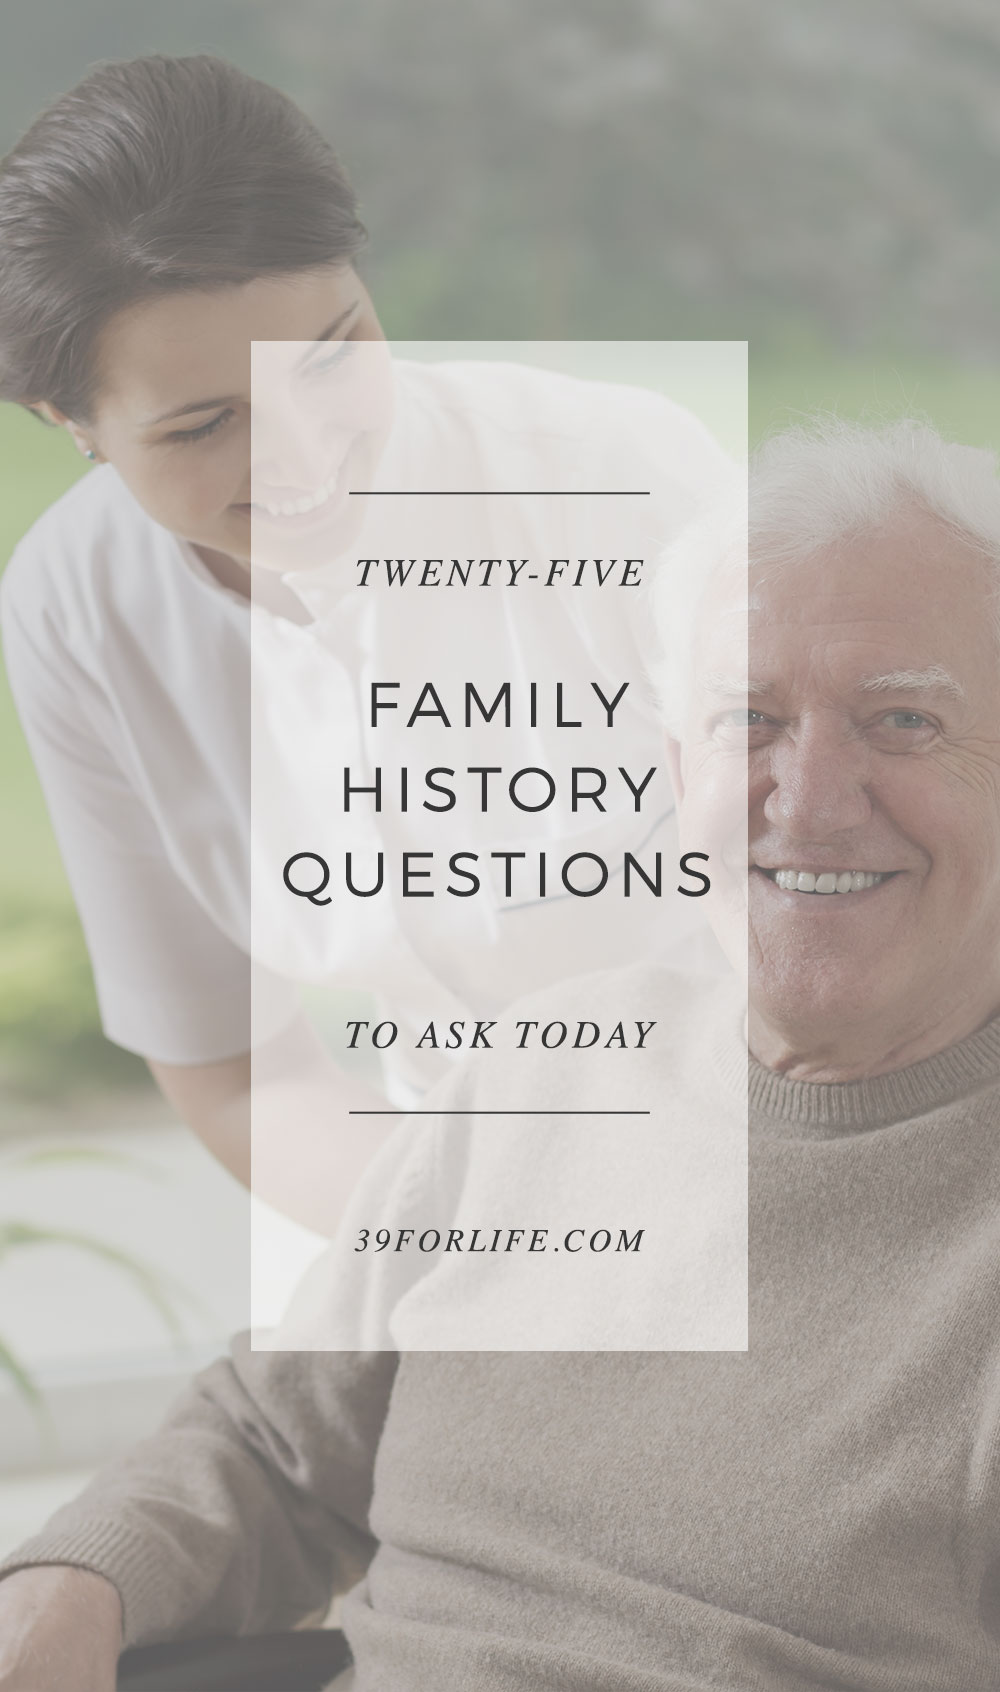 Don't wait until it's too late to build memories with your grandparents. Get to know their stories now. Here are 25 family history questions to get started.